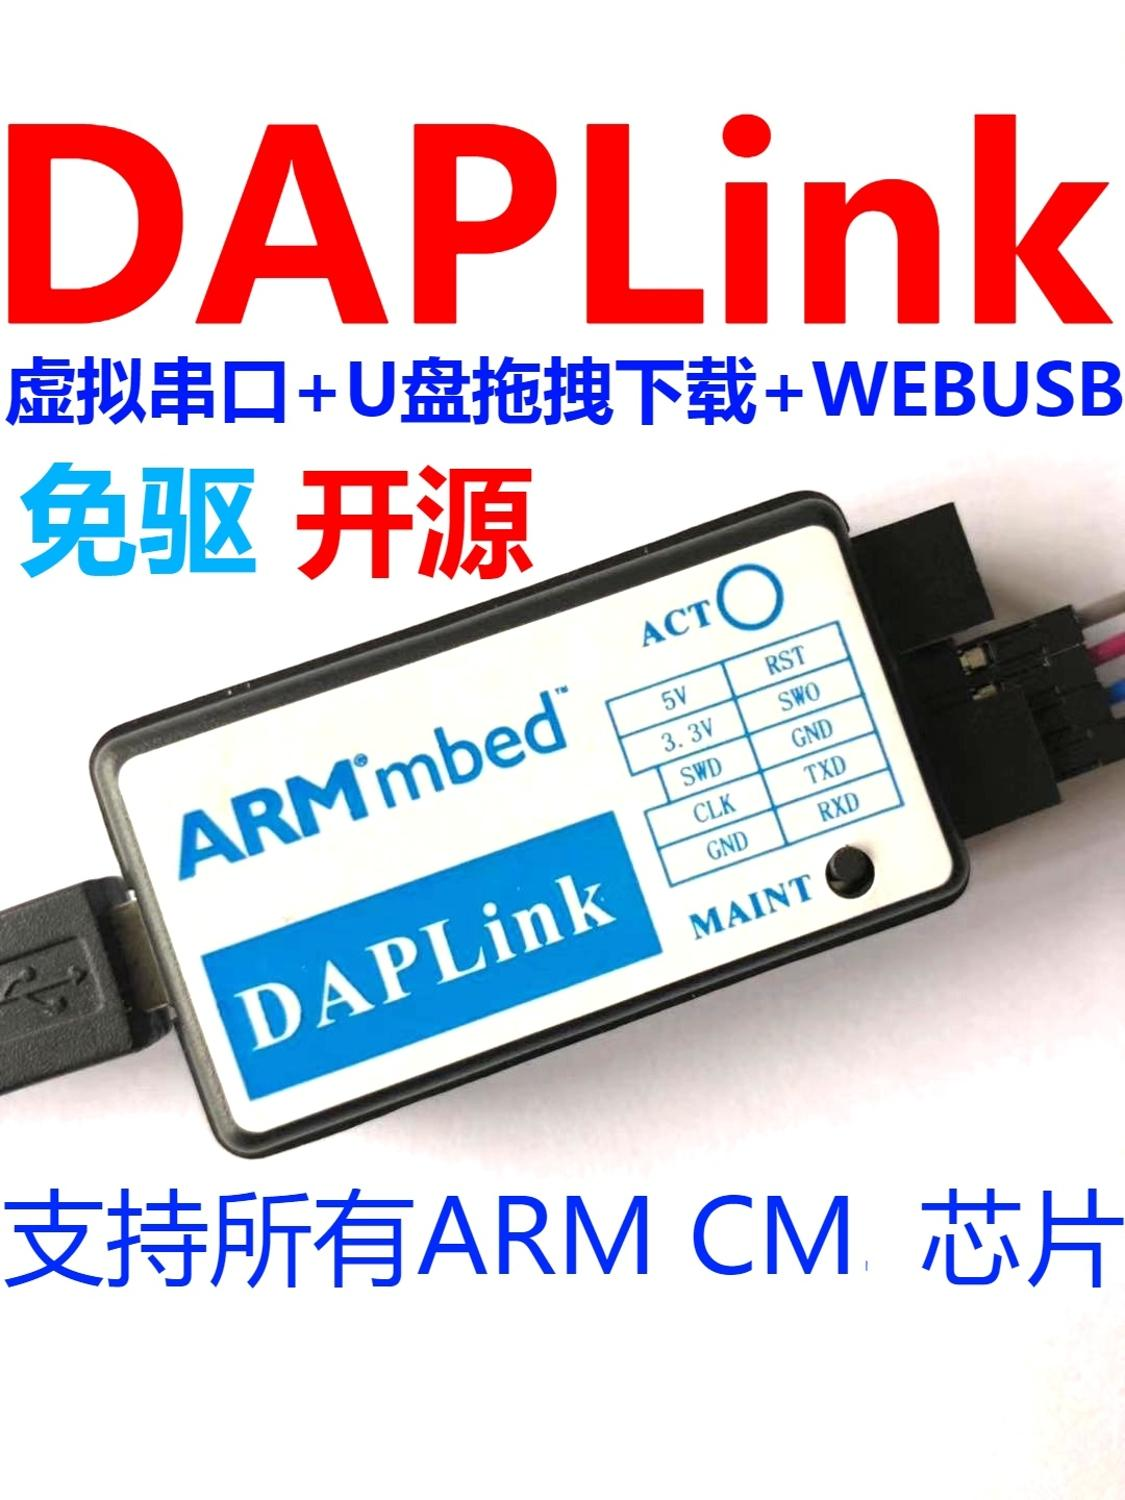 DAPLink DAPLINK ARM Emulator Replaces CMSIS-DAP STLINK